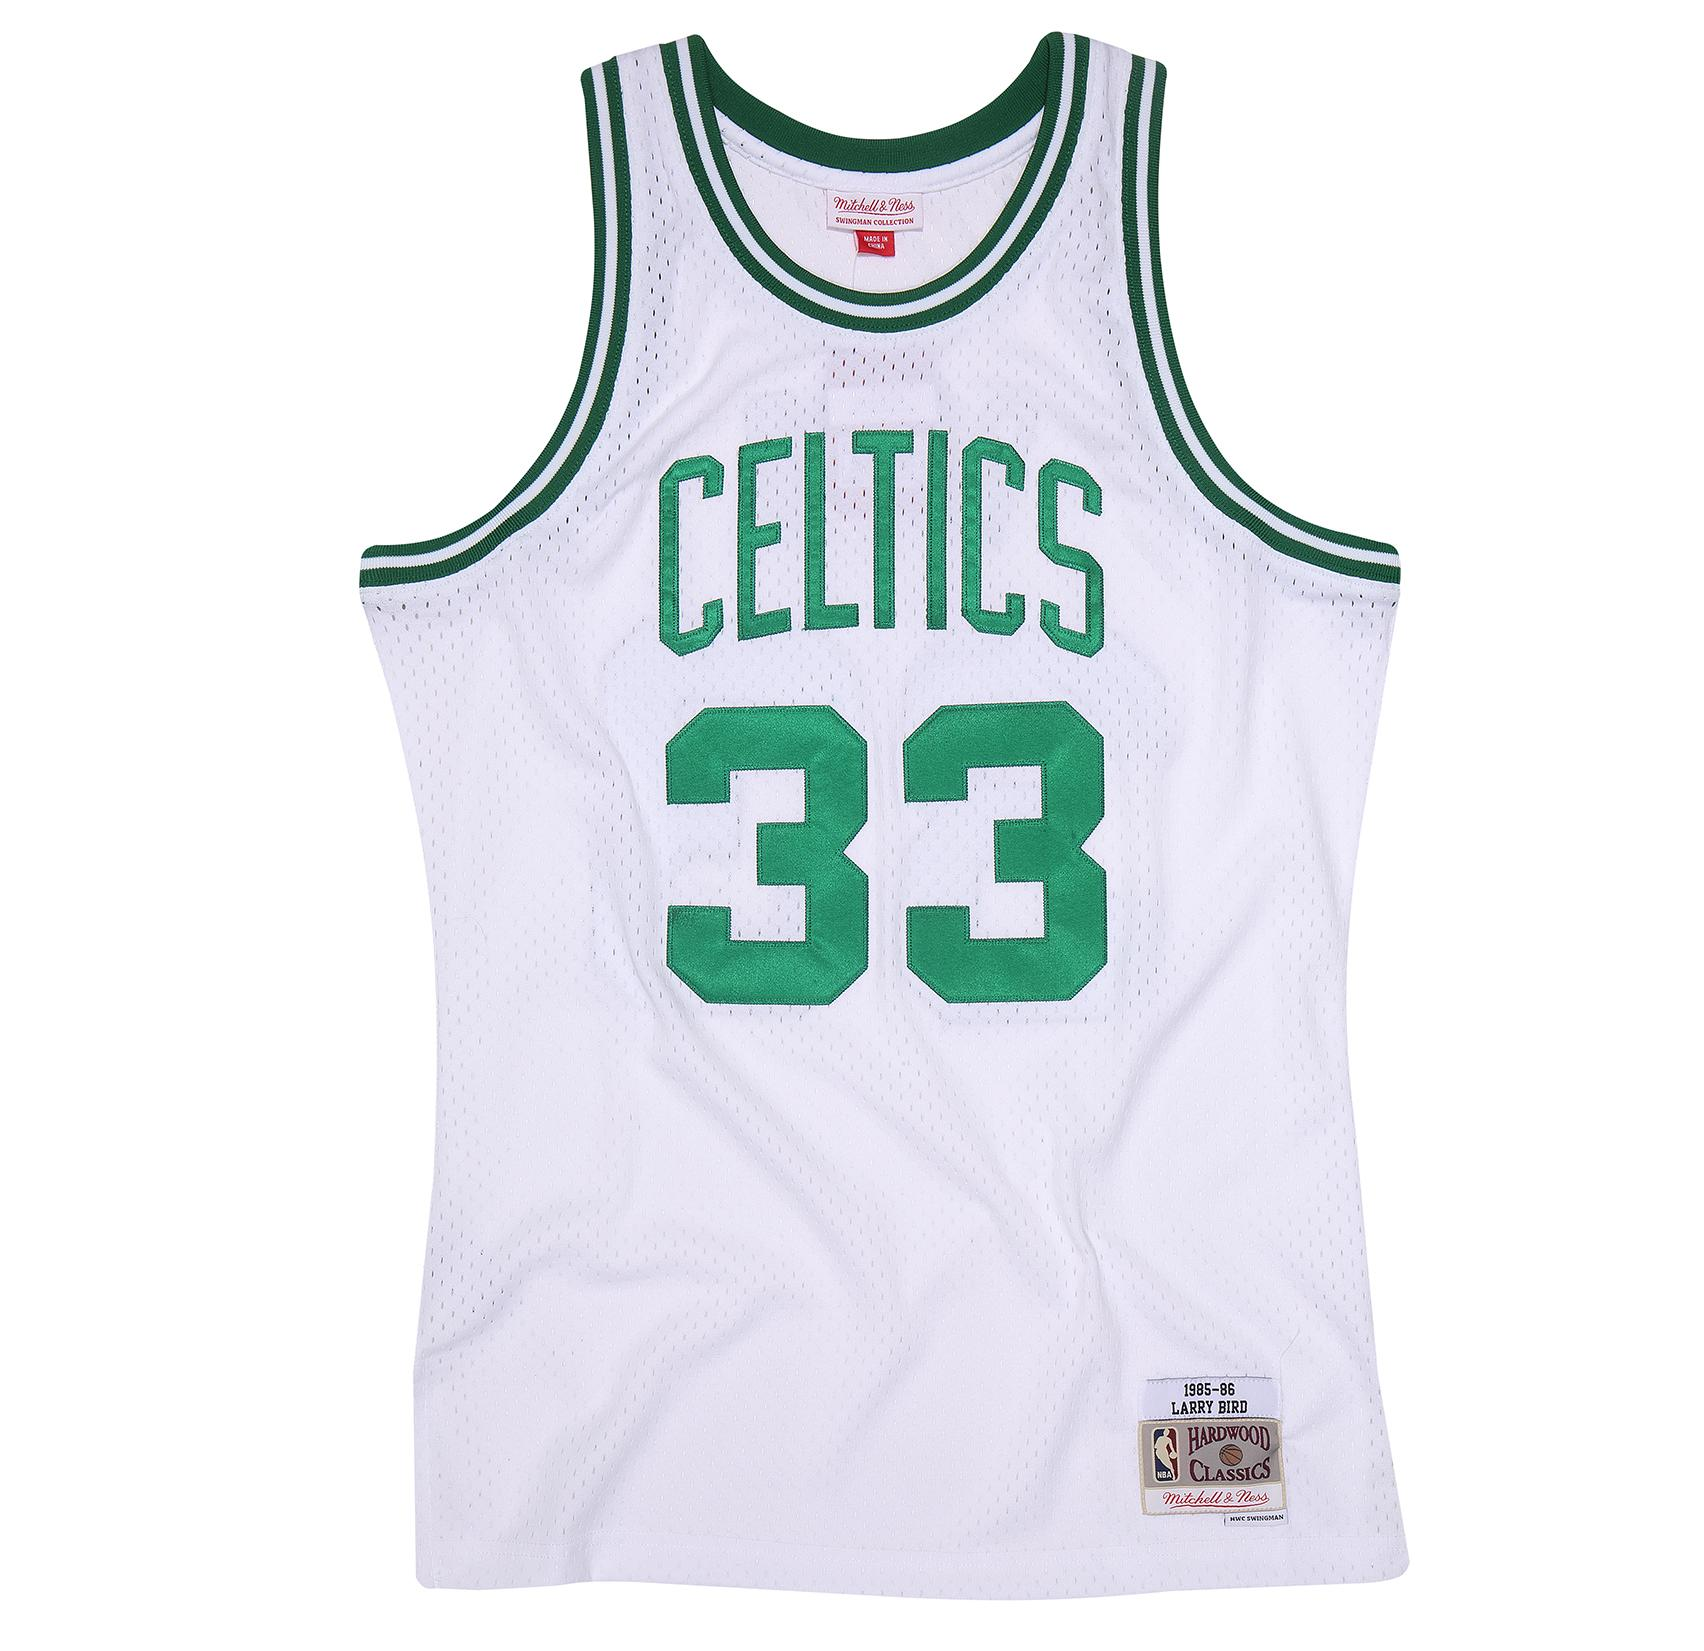 26d70f4ff Larry Bird 1985-86 Swingman Jersey Boston Celtics